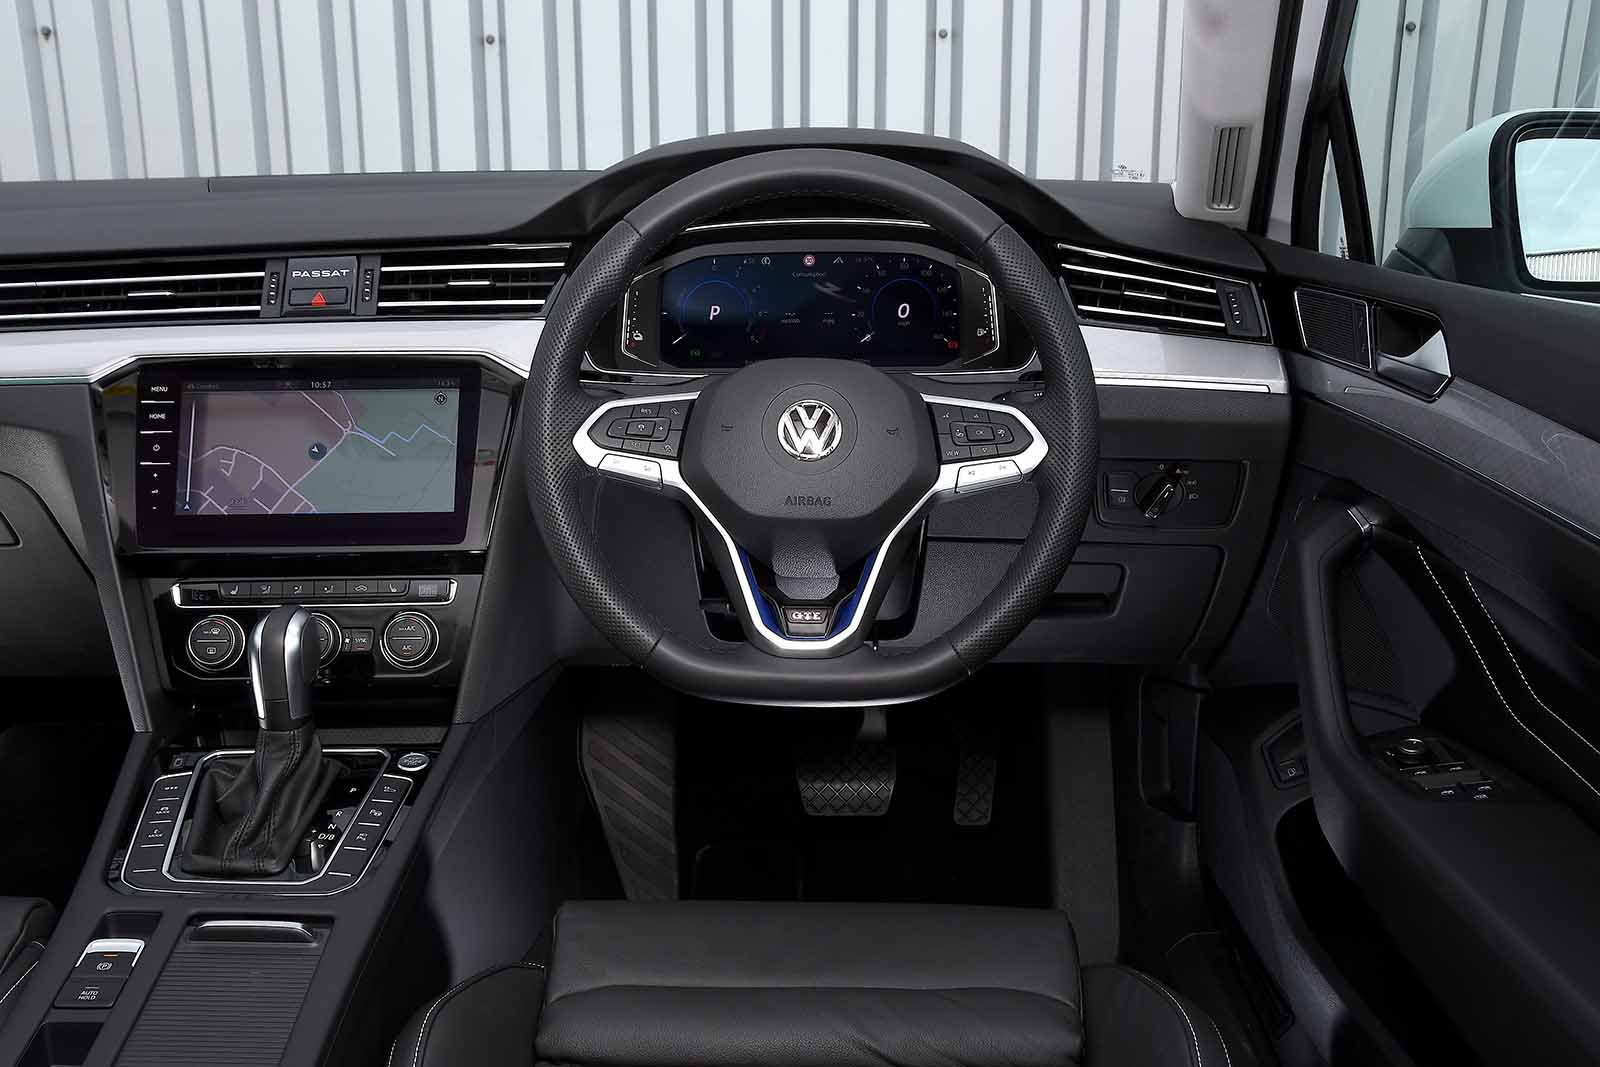 Volkswagen Passat Estate GTE 2019 RHD dashboard